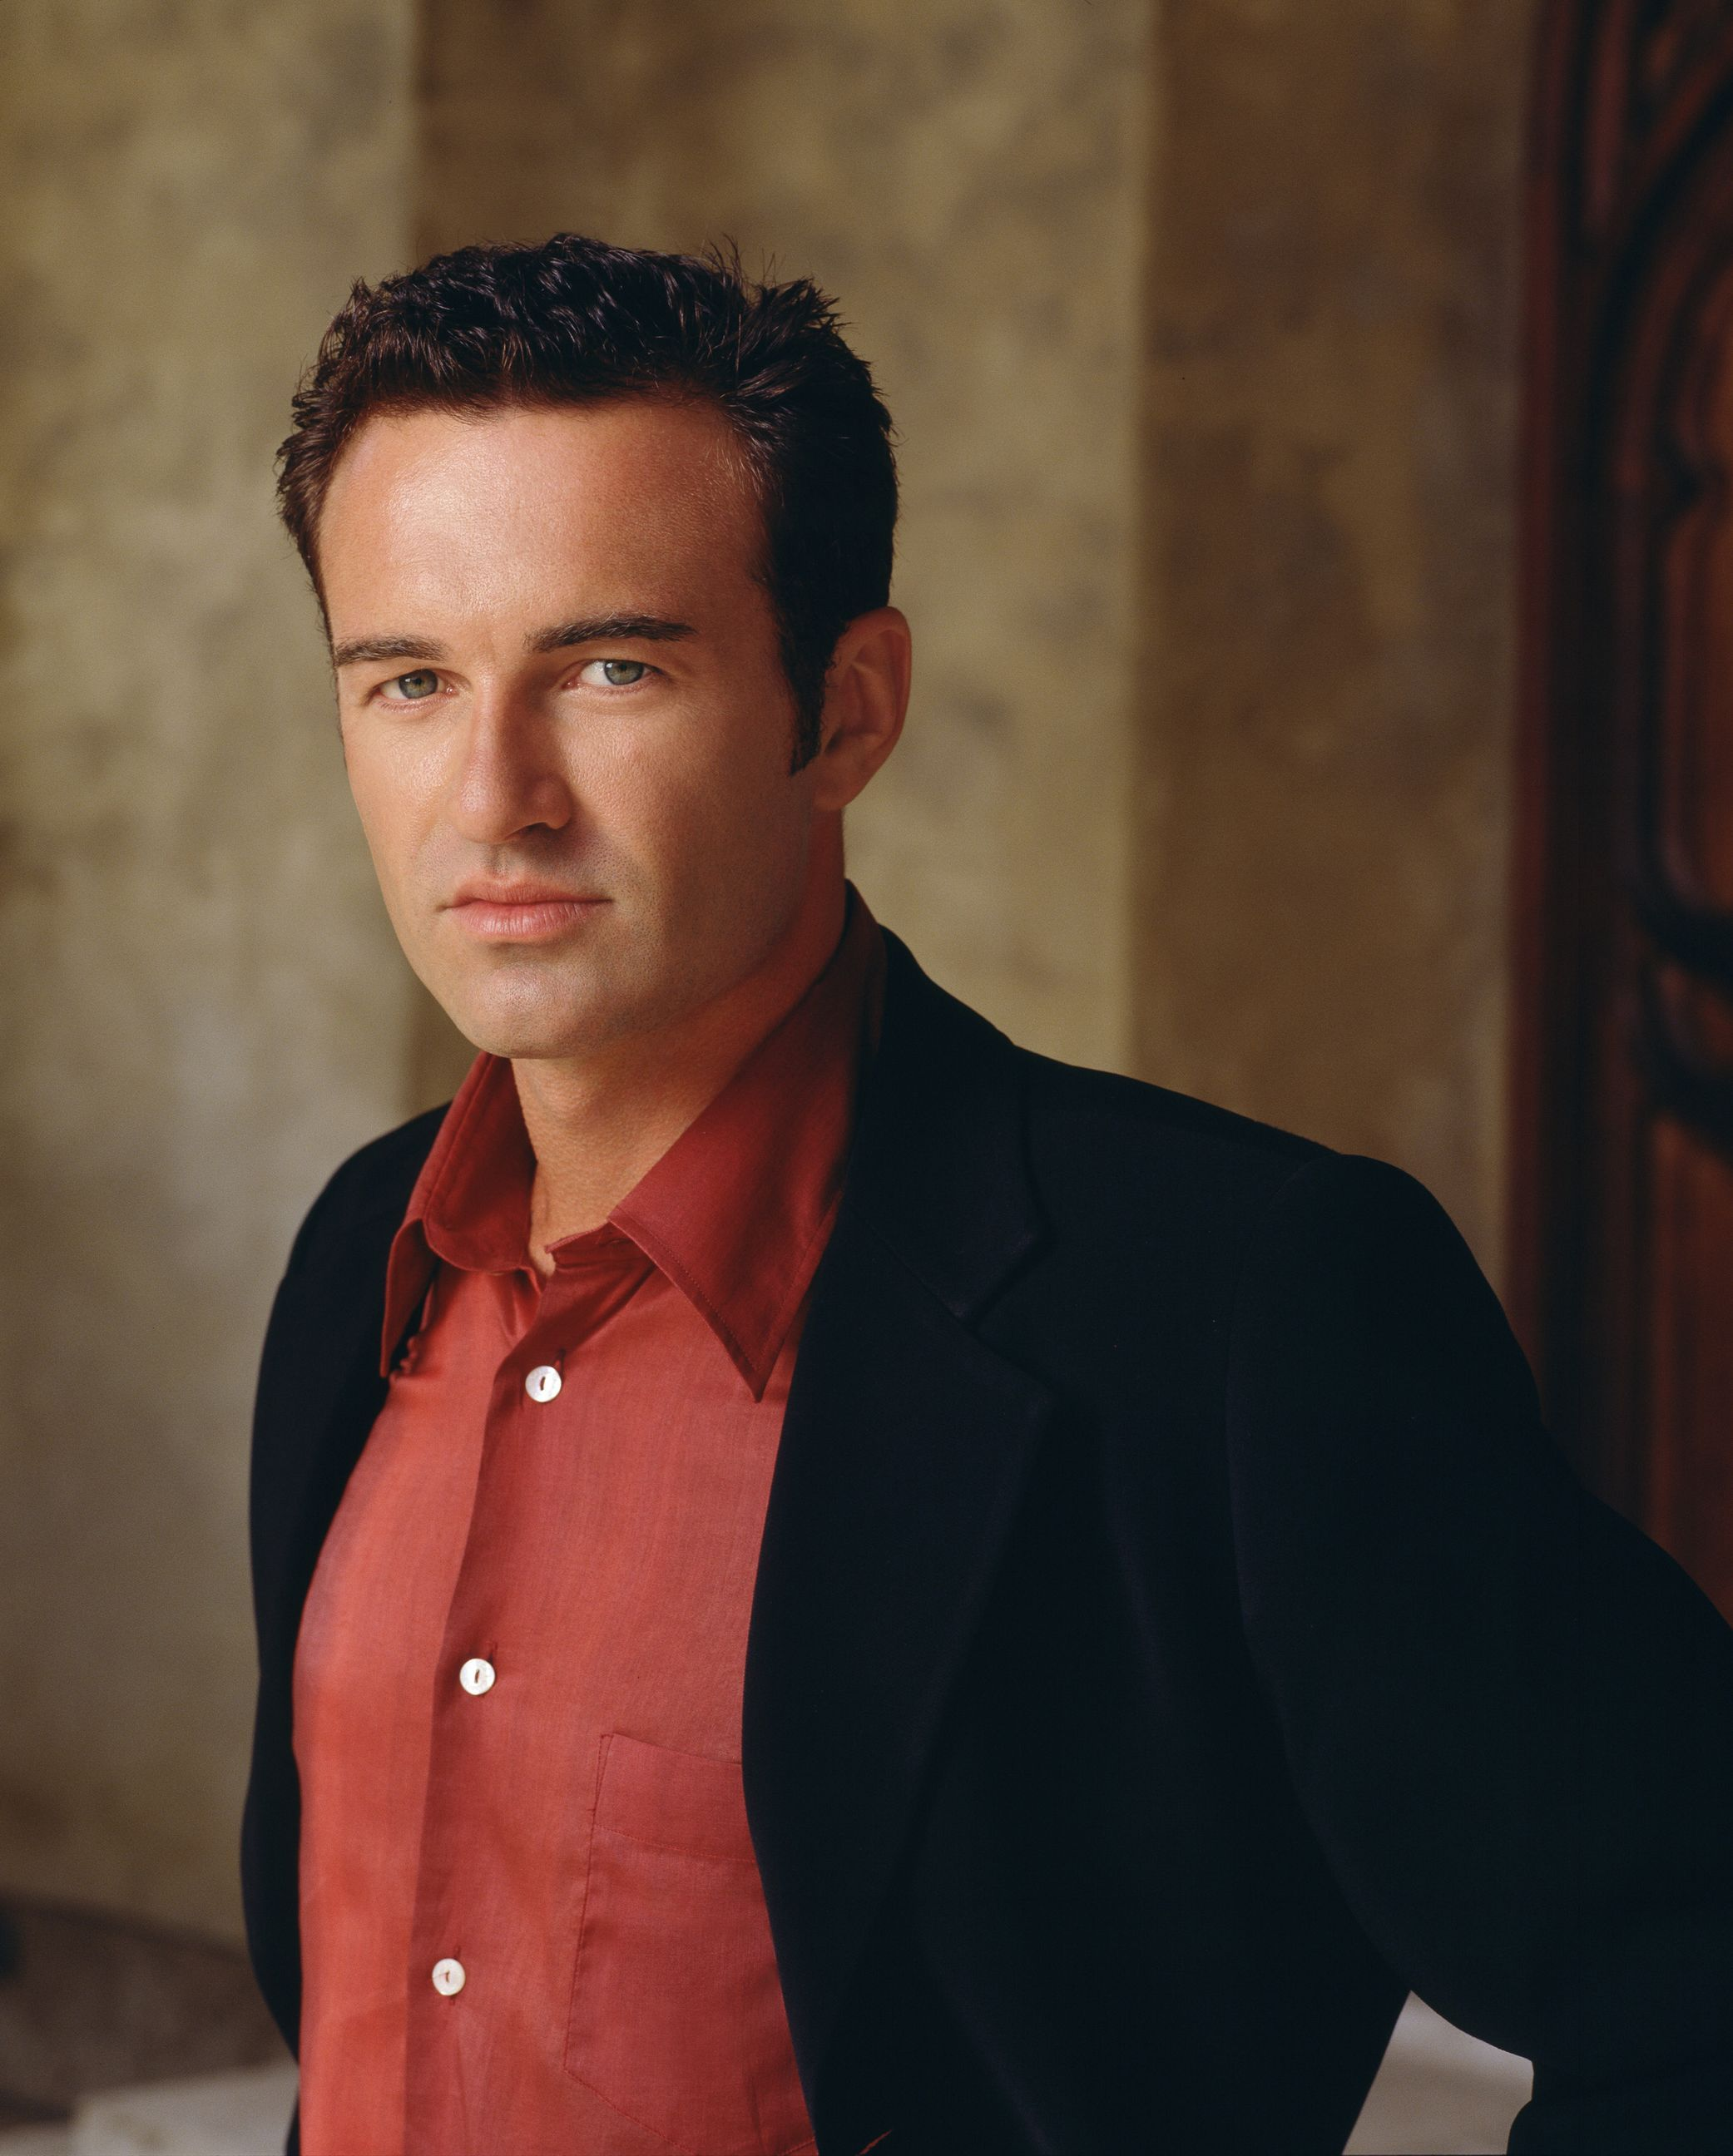 julian mcmahon brotherjulian mcmahon 2017, julian mcmahon dirk, julian mcmahon dirk gently, julian mcmahon gif, julian mcmahon daughter, julian mcmahon kinopoisk, julian mcmahon height, julian mcmahon imdb, julian mcmahon photoshoot, julian mcmahon kelly paniagua, julian mcmahon charmed, julian mcmahon brother, julian mcmahon photos, julian mcmahon 2014, julian mcmahon sandra bullock, julian mcmahon official instagram, julian mcmahon sandra bullock film, julian mcmahon madison, julian mcmahon instagram, julian mcmahon 2016